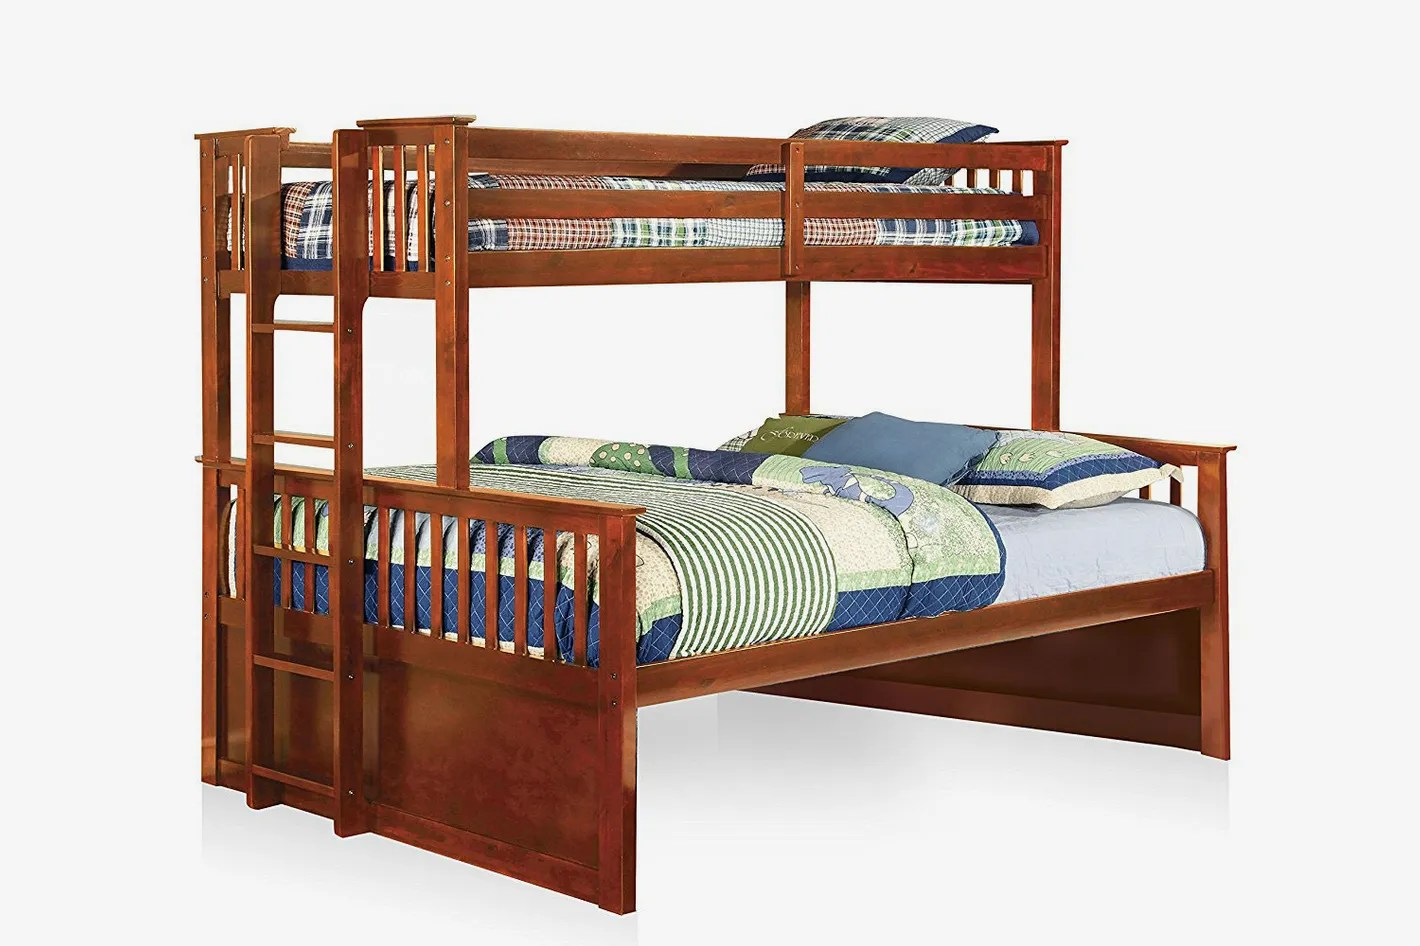 Lummy Storage America Pammy Twin Over Queen Bunk Bed Bunk Beds On Amazon 2018 Twin Over Queen Bunk Bed Staircase Twin Over Queen Bunk Bed Furniture houzz-03 Twin Over Queen Bunk Bed